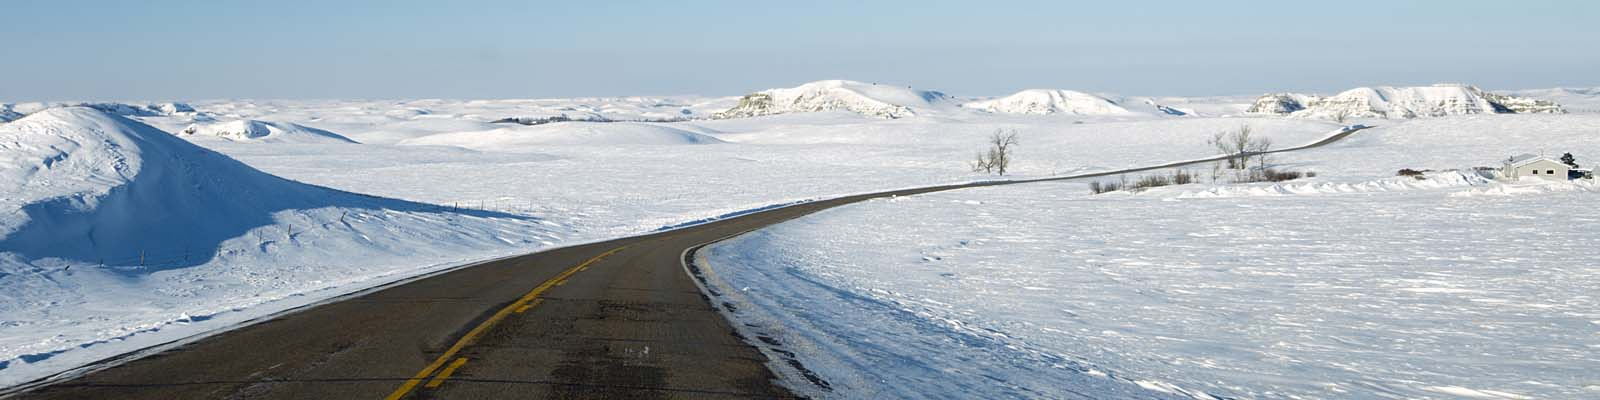 This is an image of a road surrounded by snow in Bismark North Dakota where ASTA-USA provides professional translation services.